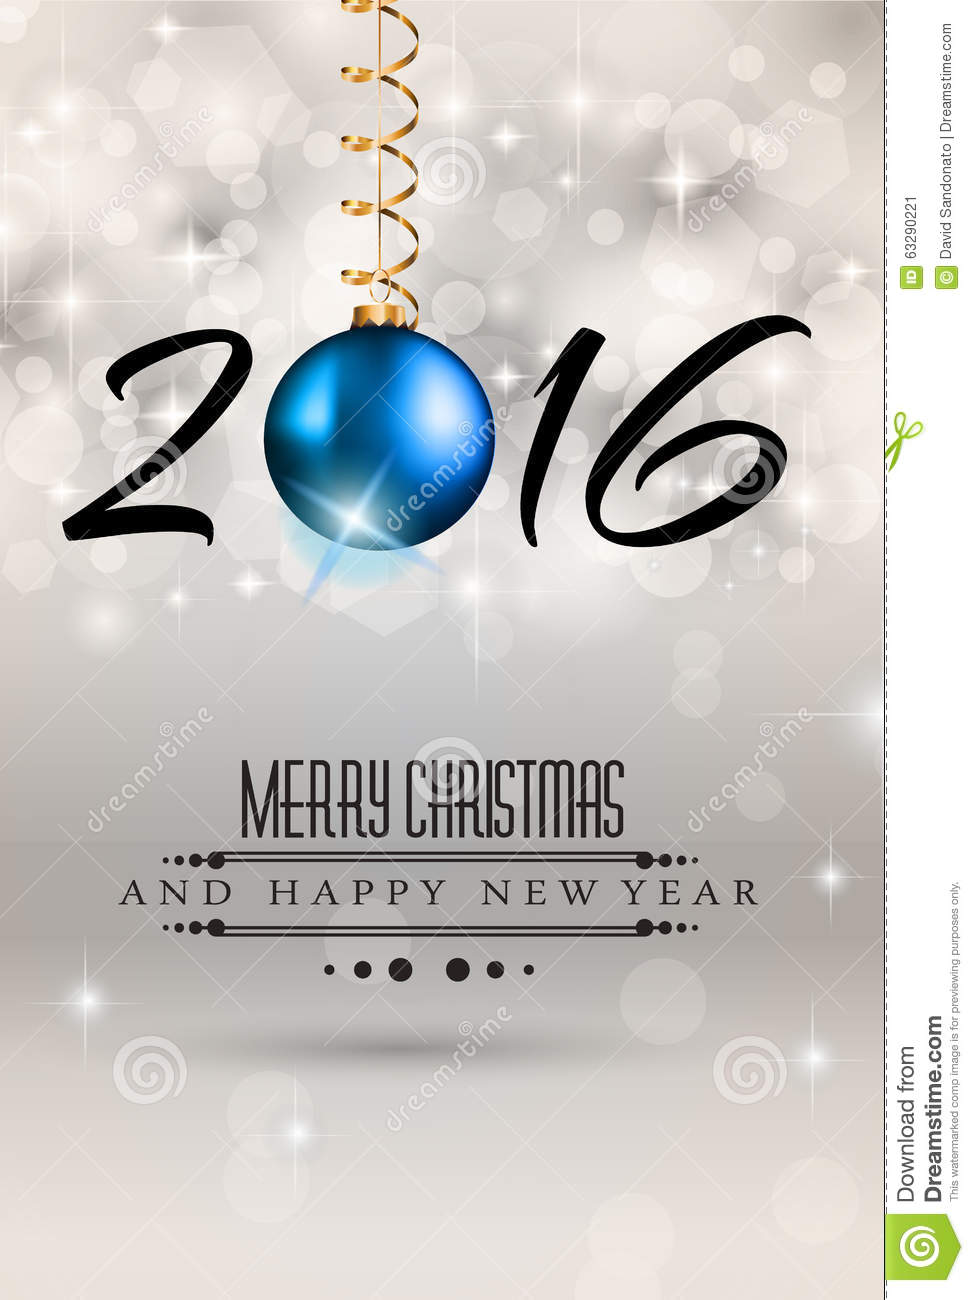 2016 merry christmas and happy new year background for seasonal greetings cards parties flyer dineer event invitations xmas cards and sp on